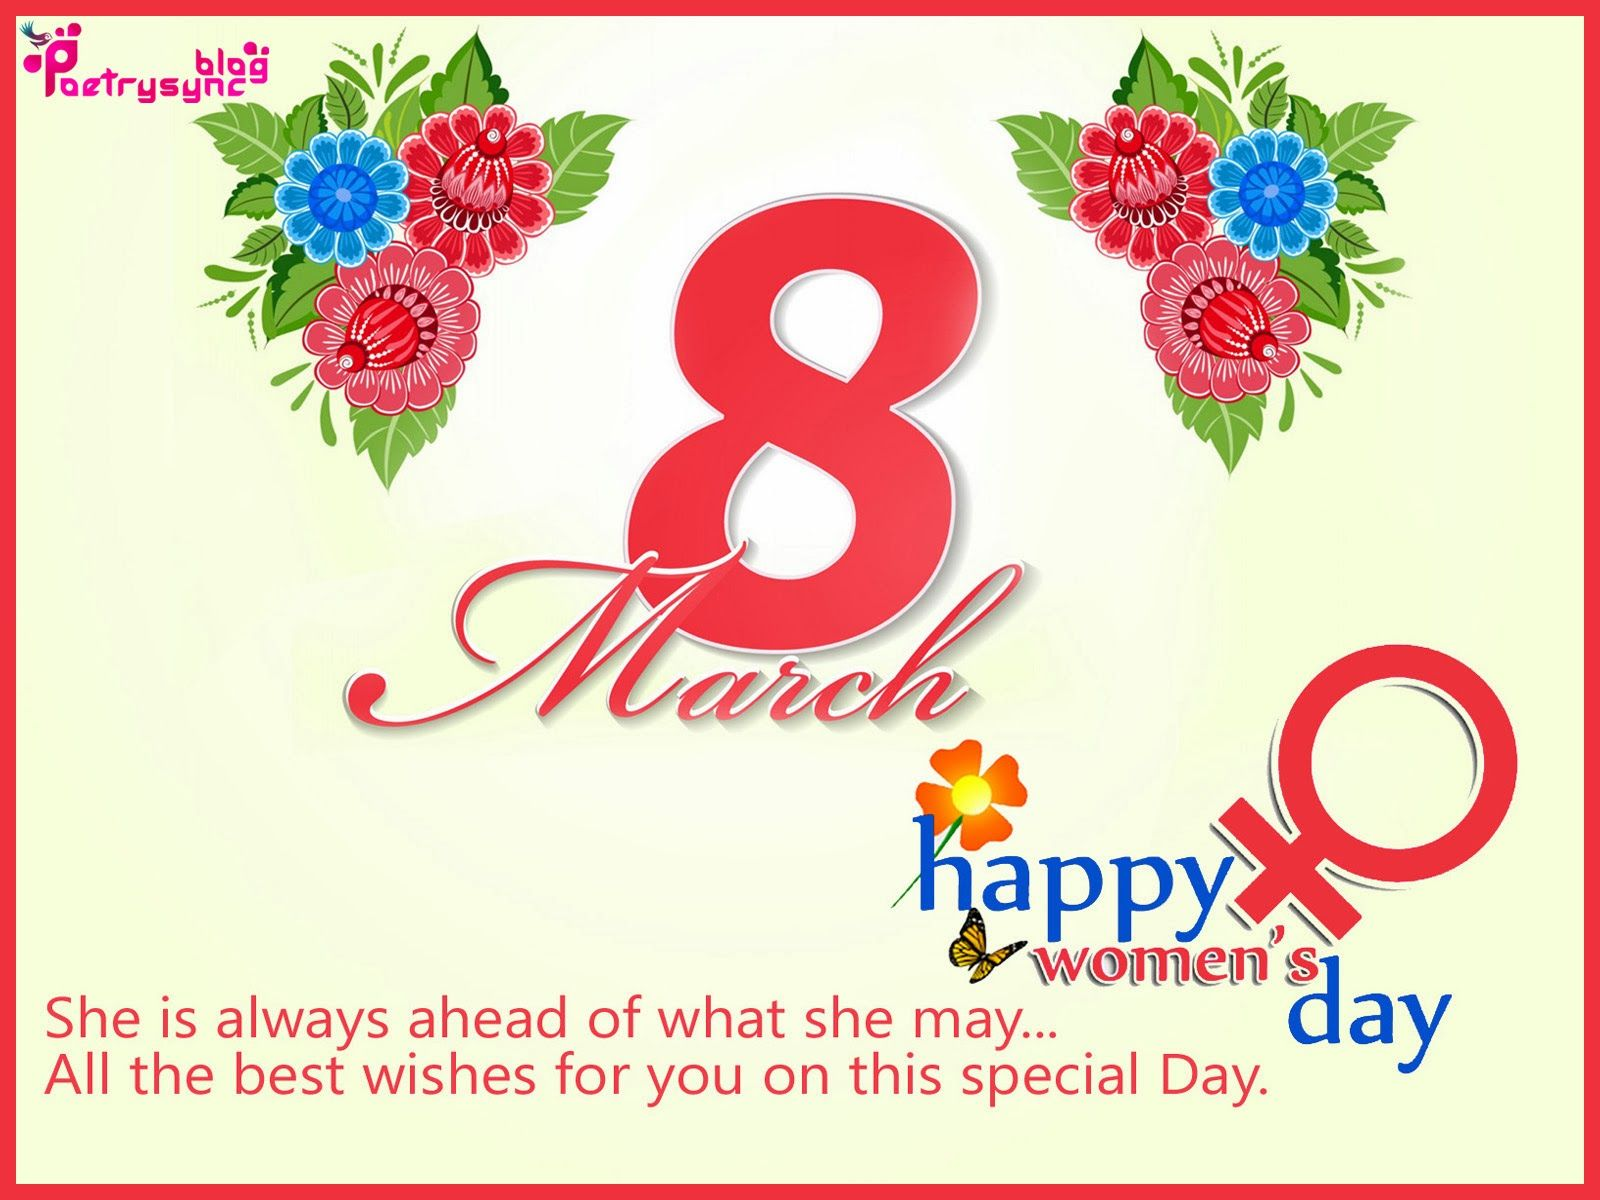 Happy International Womens Day 8 March Wishes And Greetings Sms